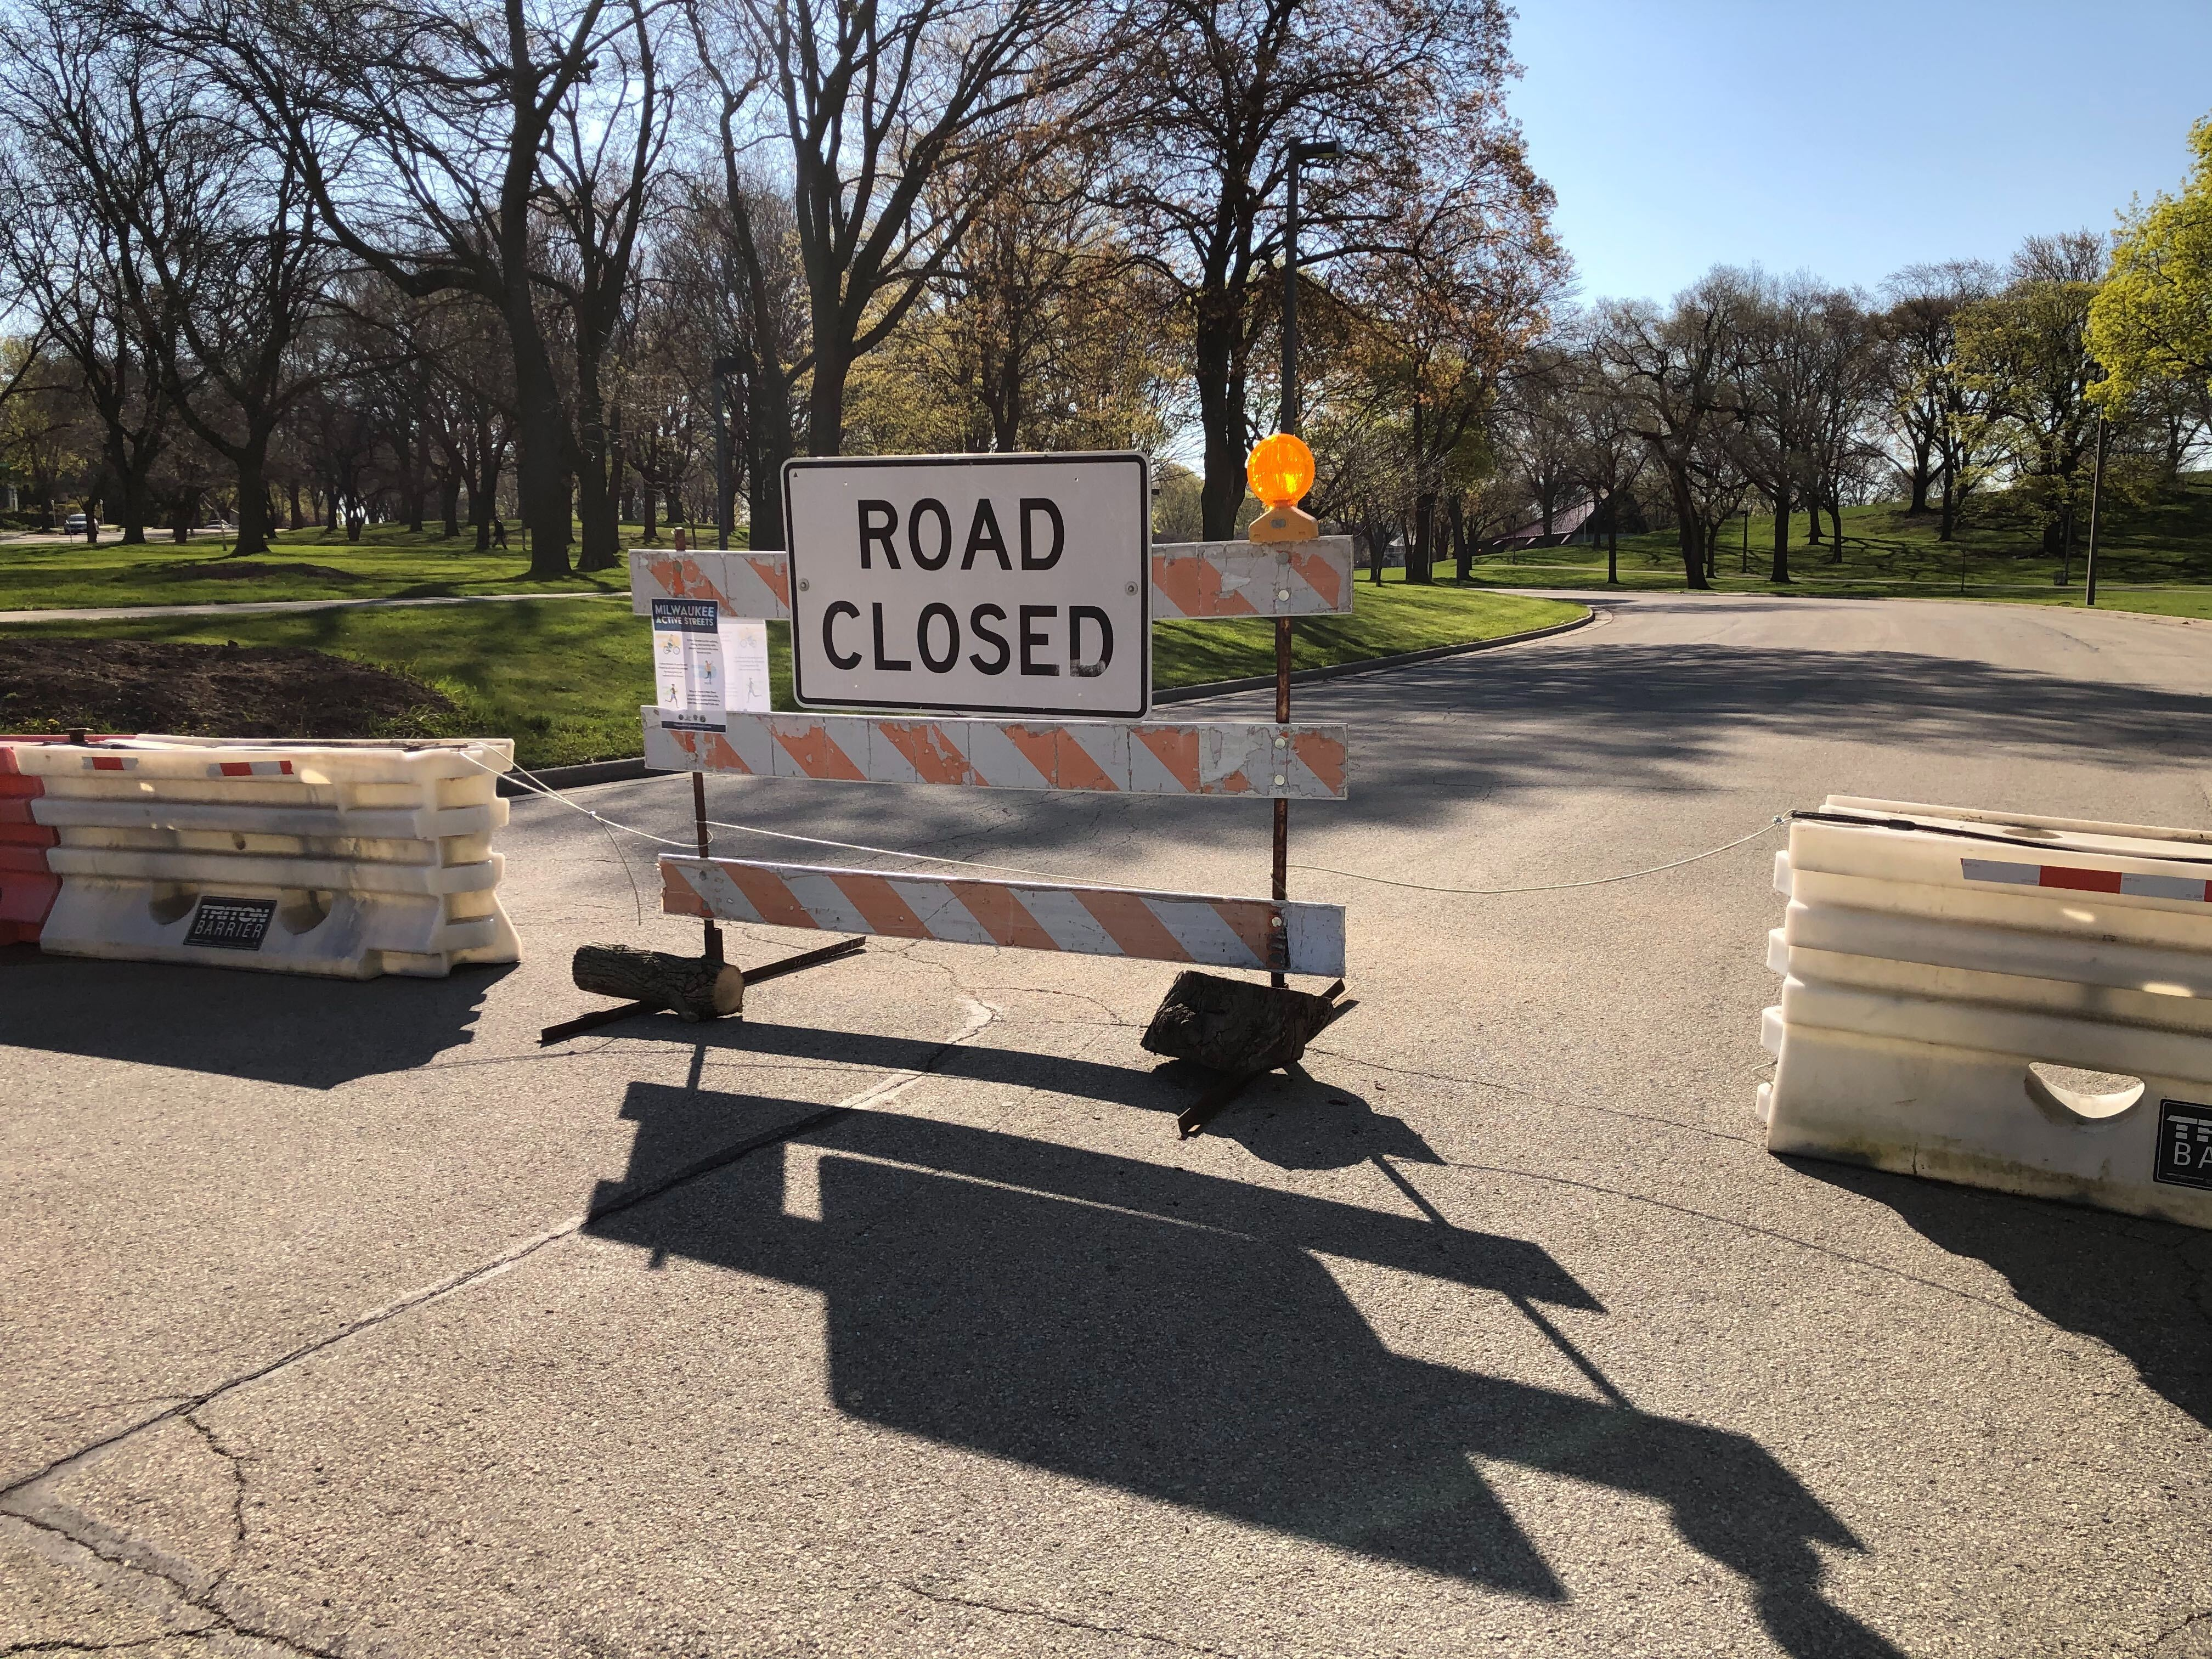 Active Streets closure of roads through Humboldt Park. Photo by Jeramey Jannene.